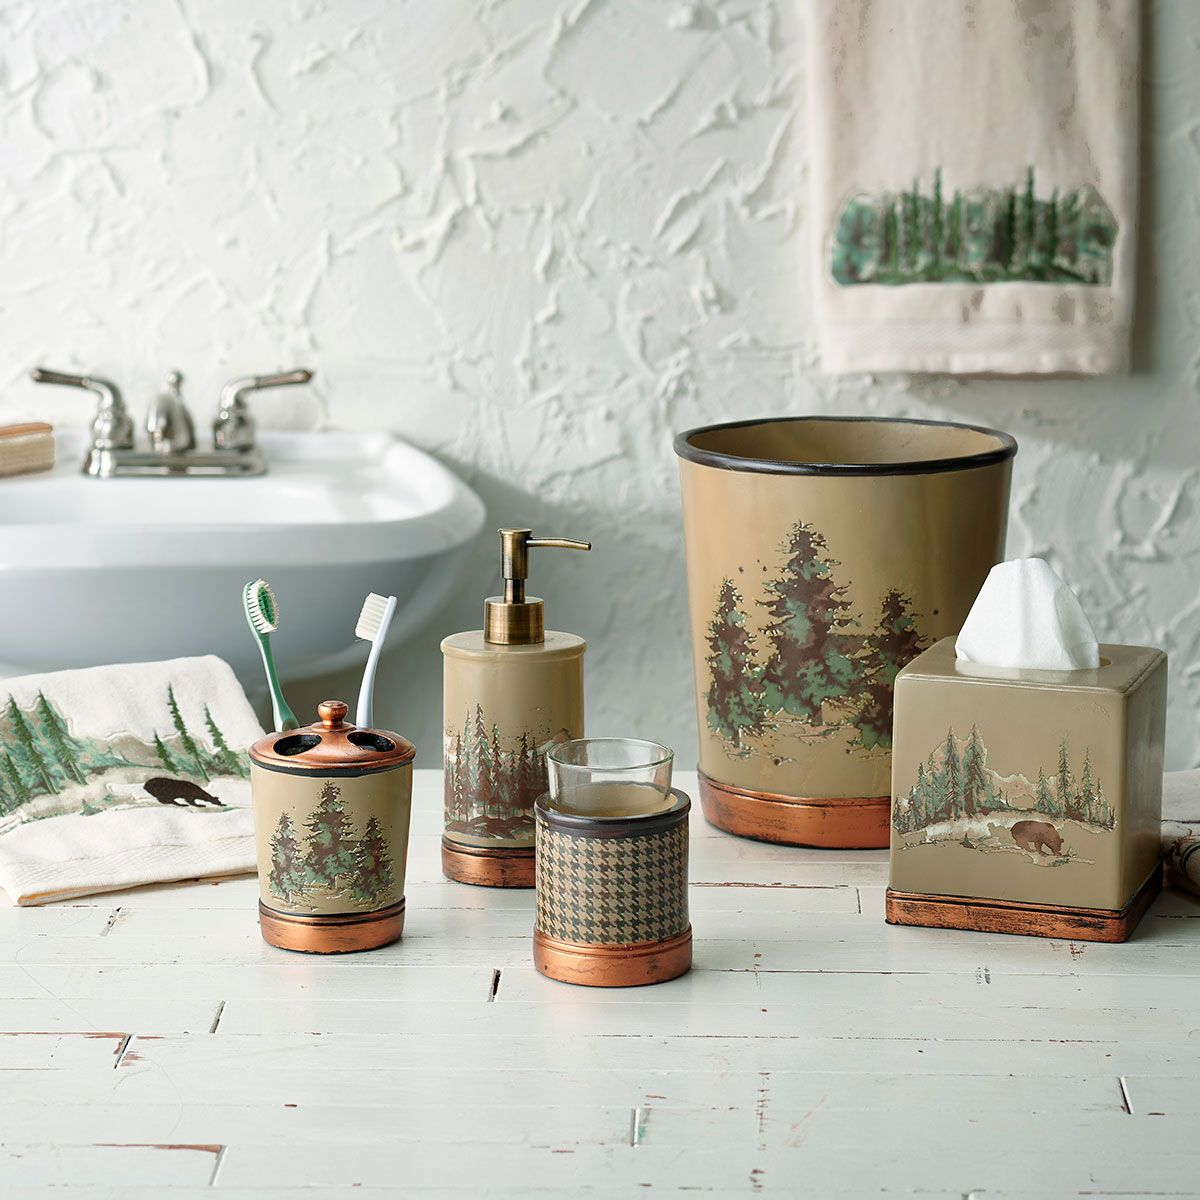 How To Spruce Up Your Cabin With Rustic Bathroom Decor Karen Batis